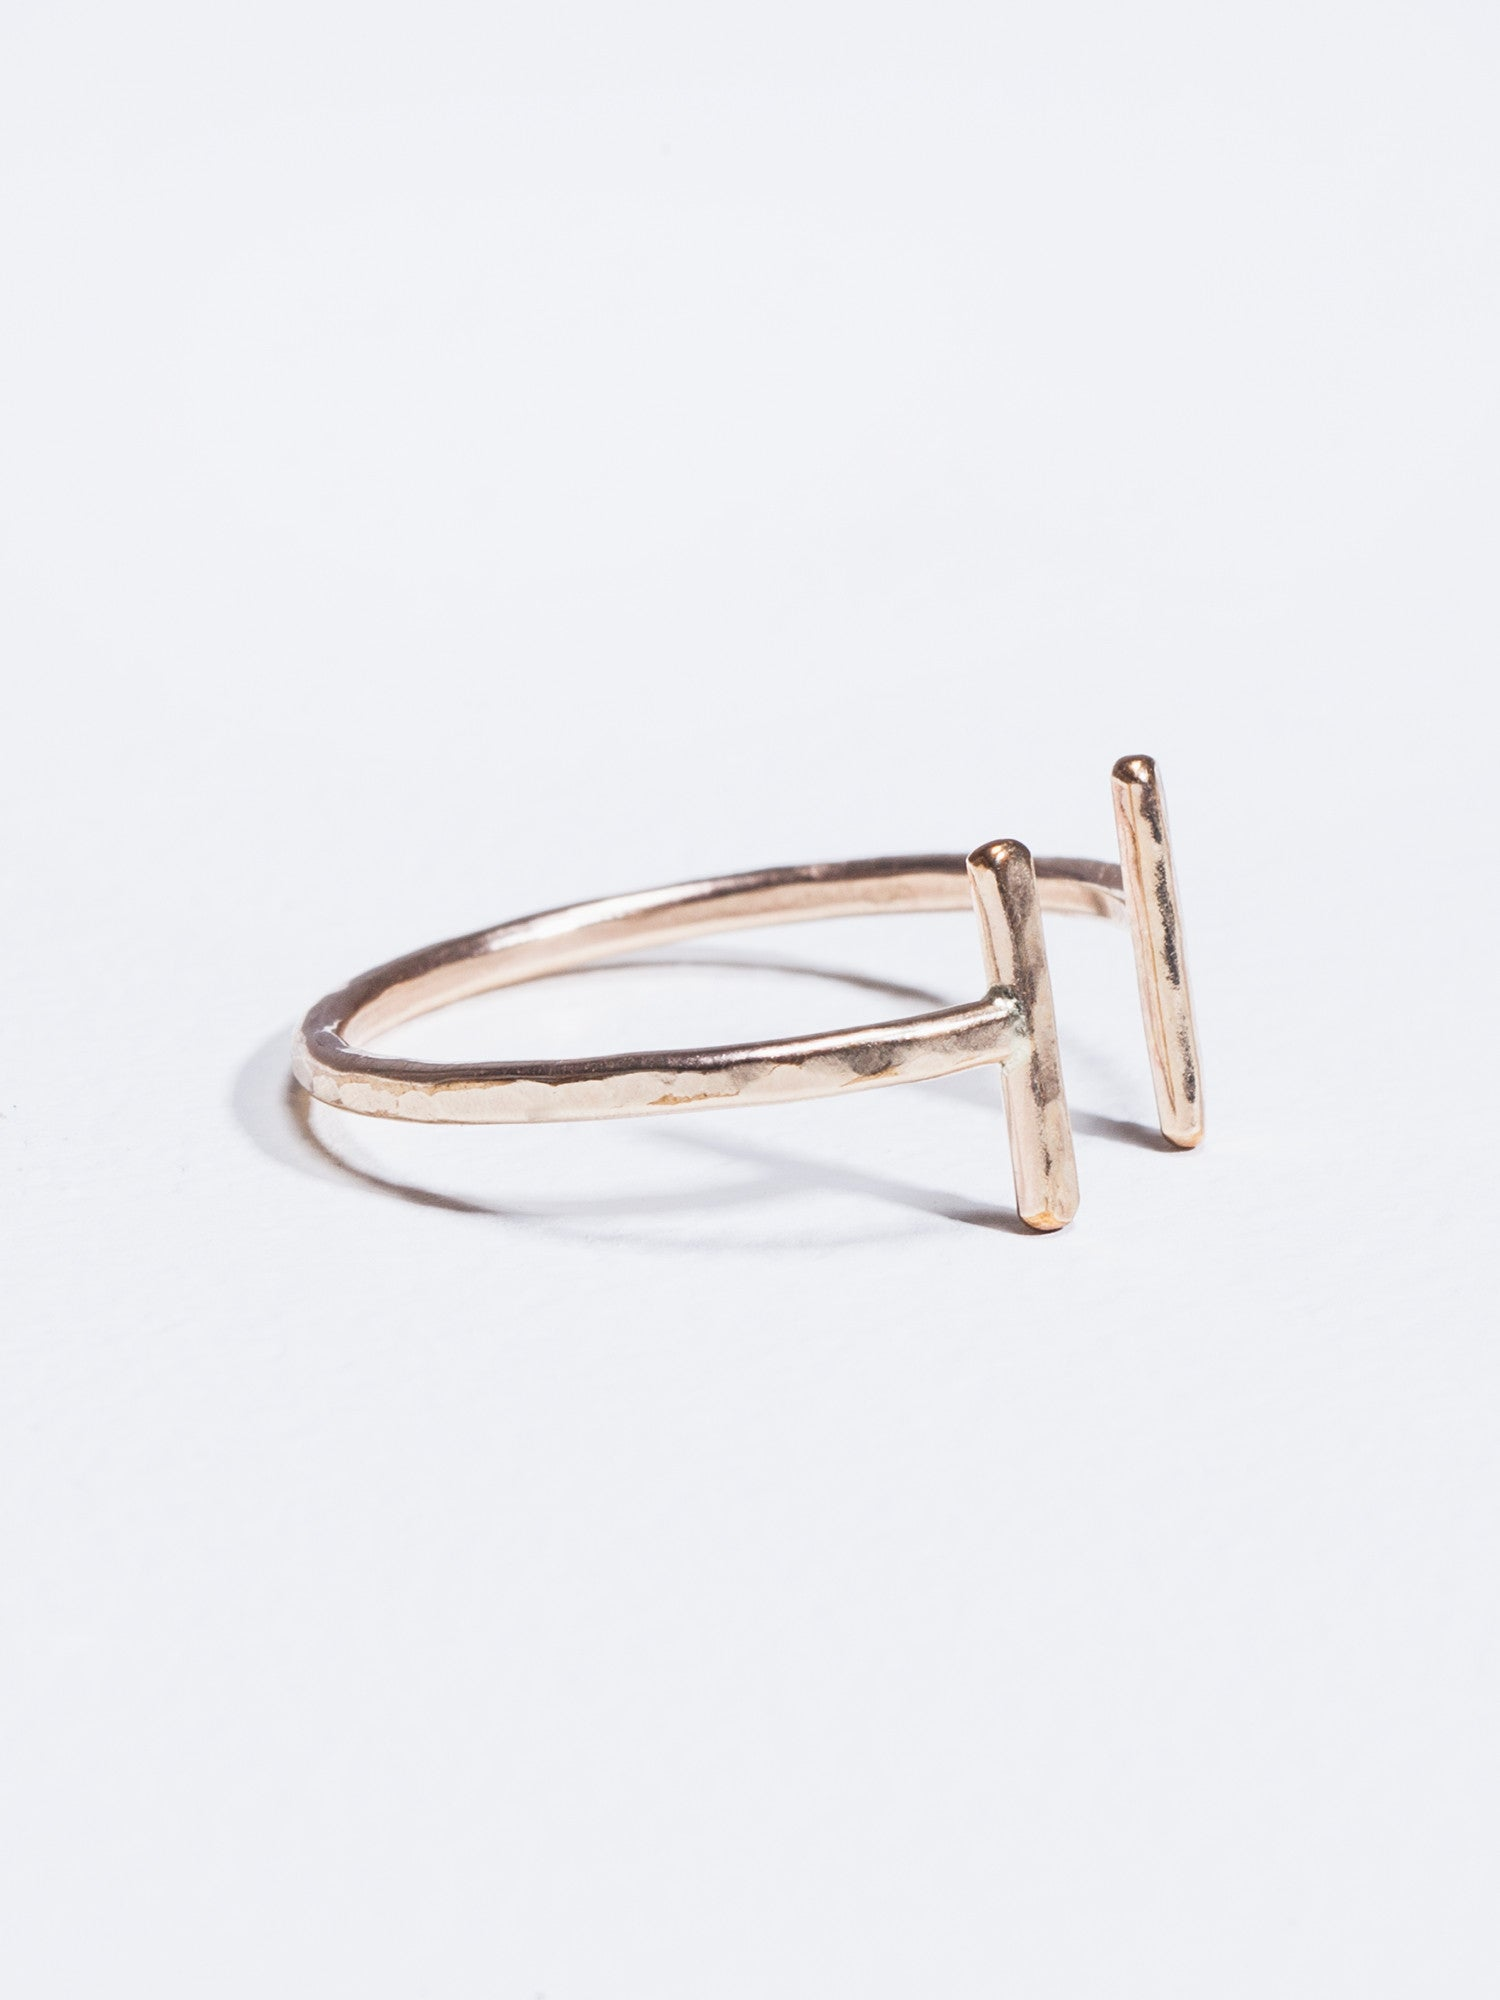 Stefanie Sheehan Open Ring Gold Filled Detail Side